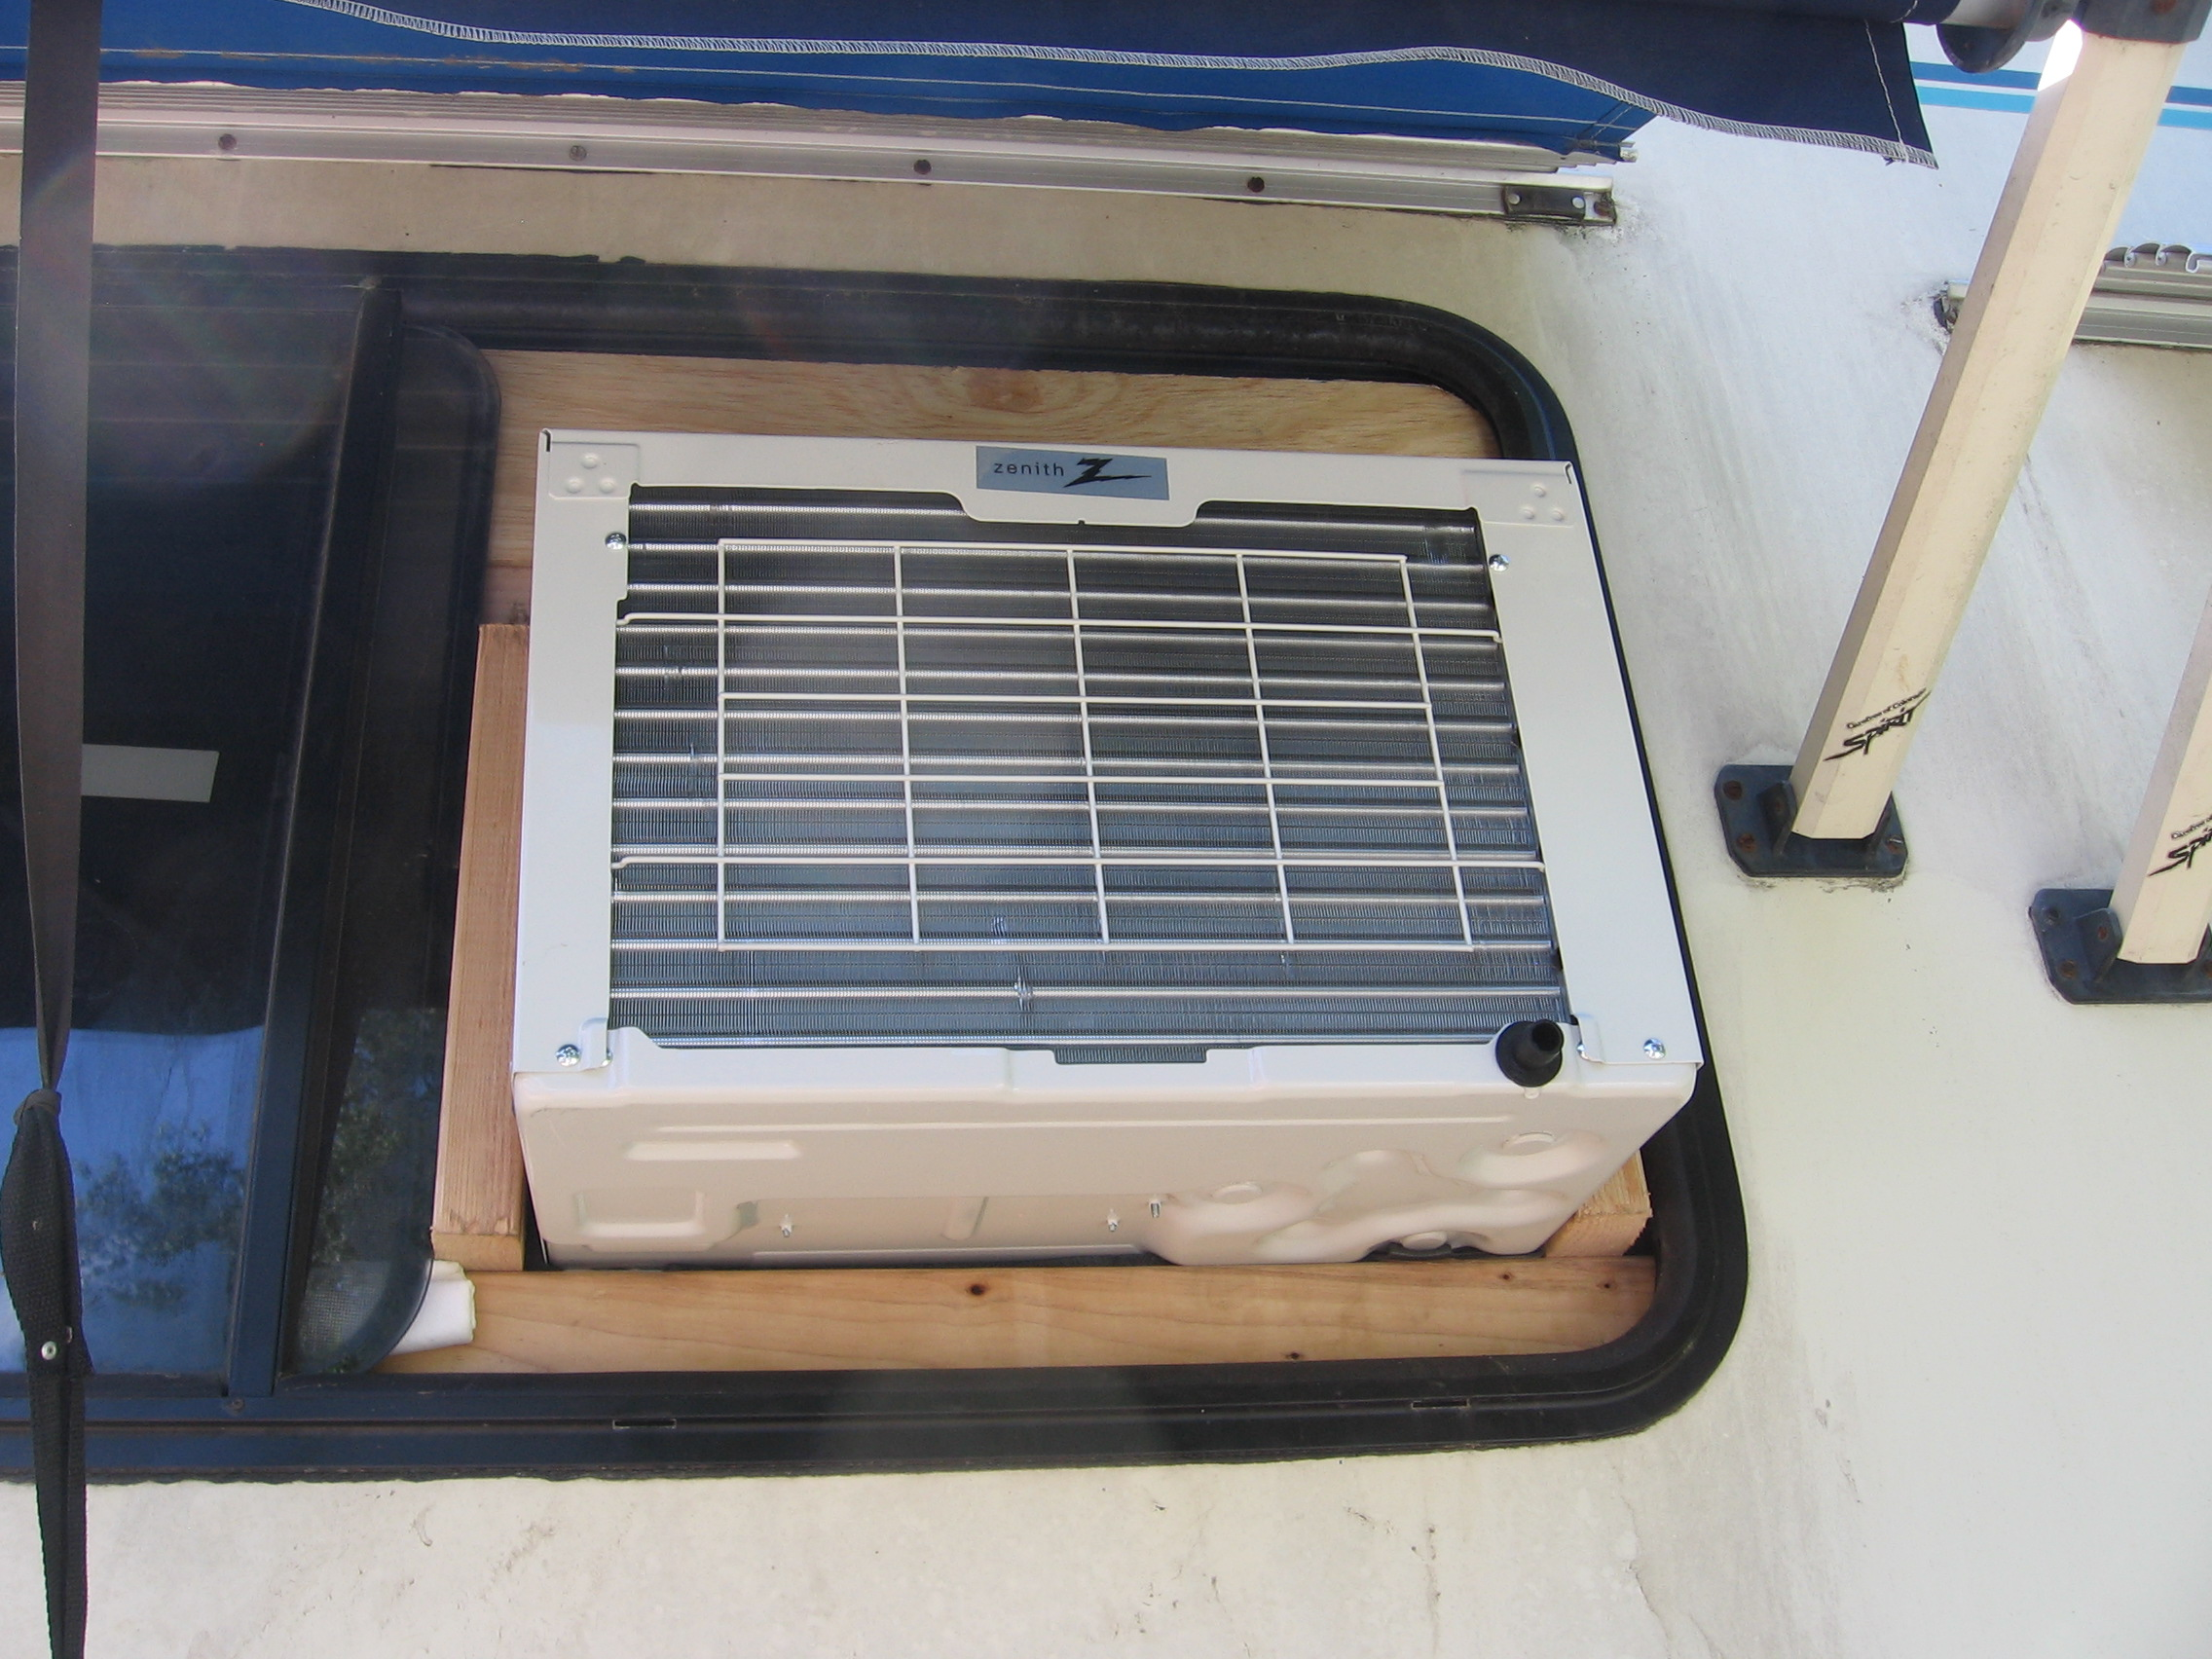 Tiny window air conditioner air conditioner guided for Window unit ac